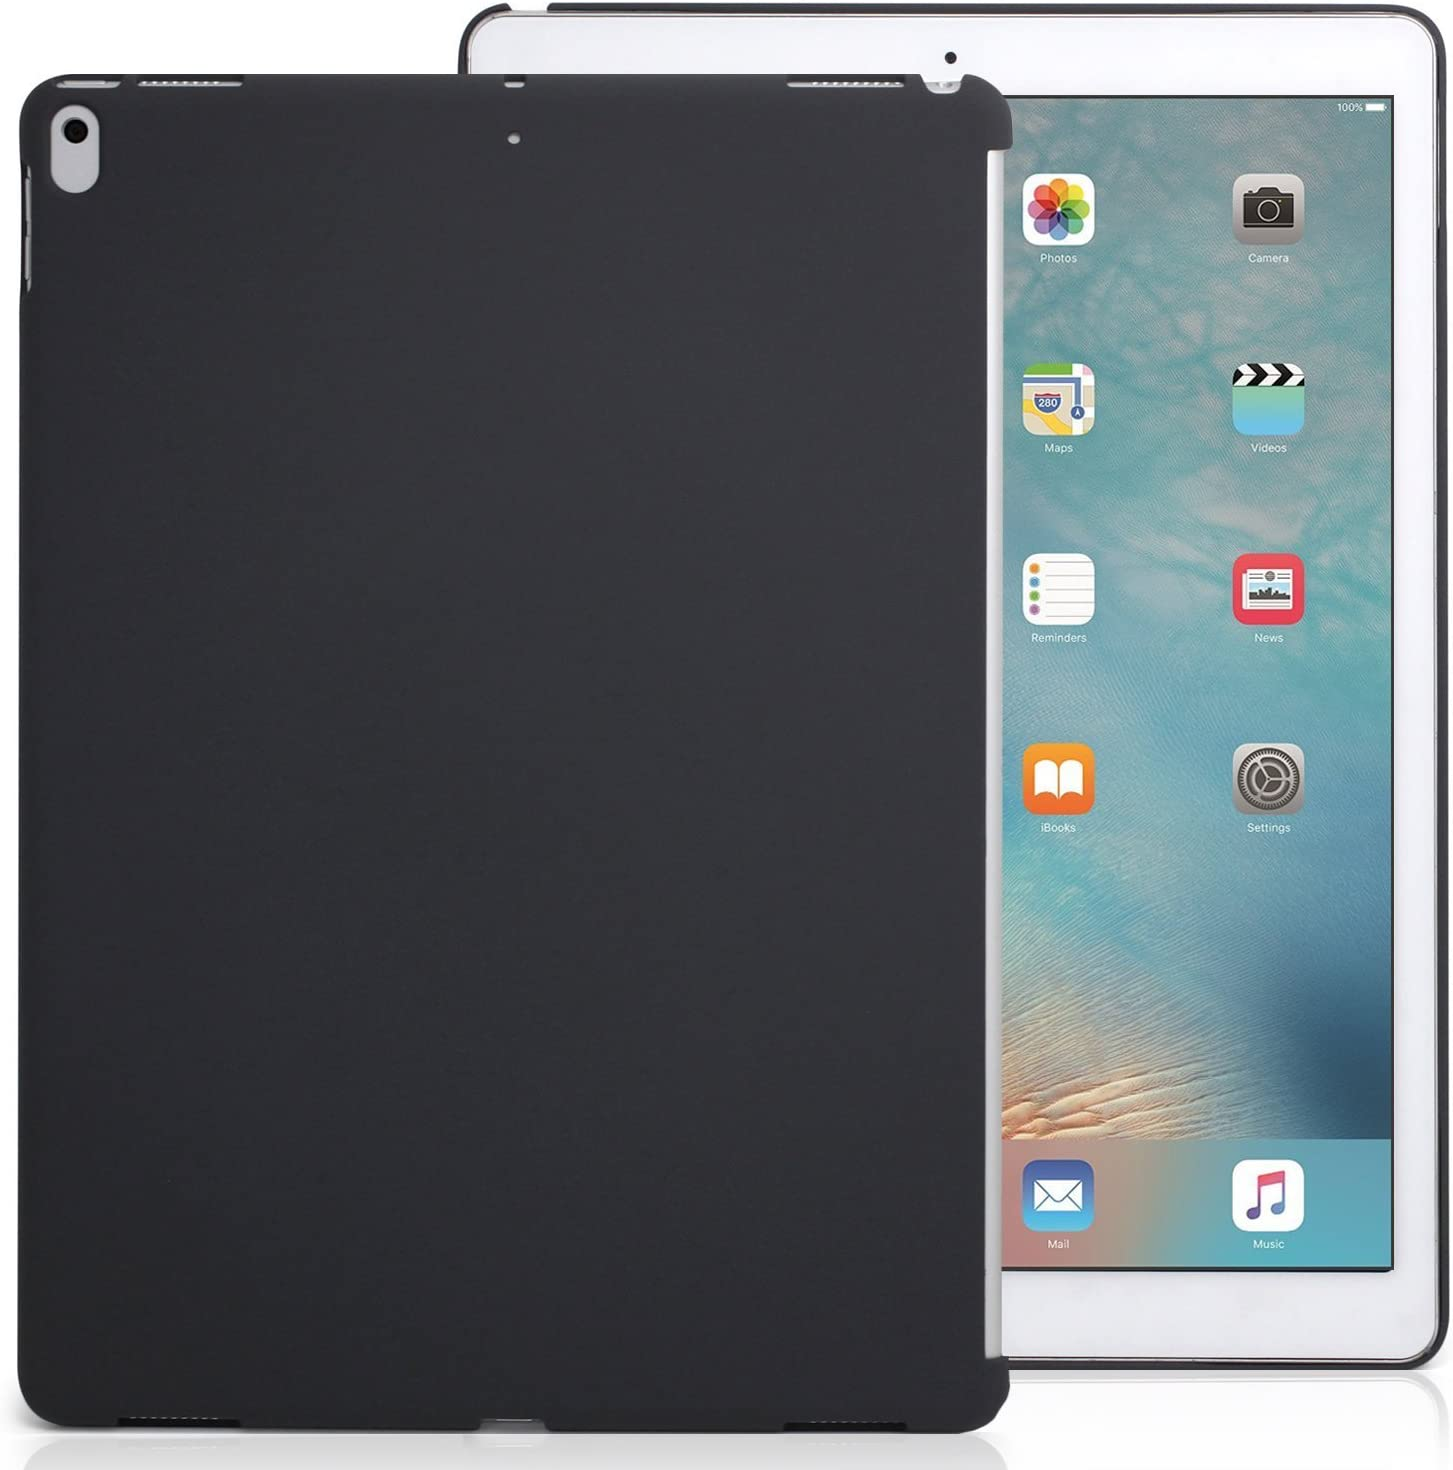 KHOMO iPad Pro 12.9 Inch Charcoal Gray Color Case - 2017 Version - Companion Cover - Perfect match for Apple Smart keyboard and Cover